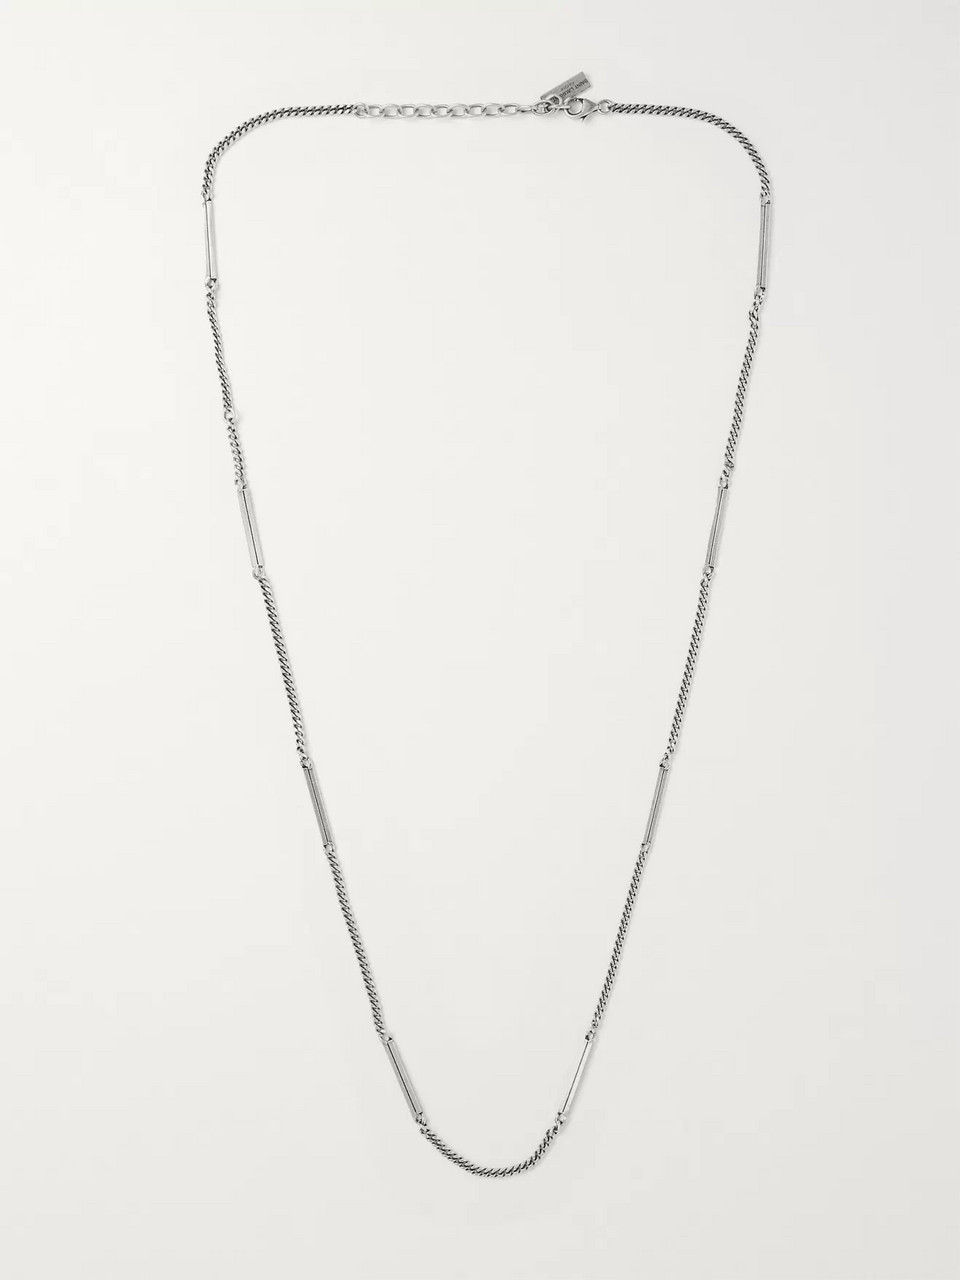 SAINT LAURENT Burnished Silver-Tone Necklace